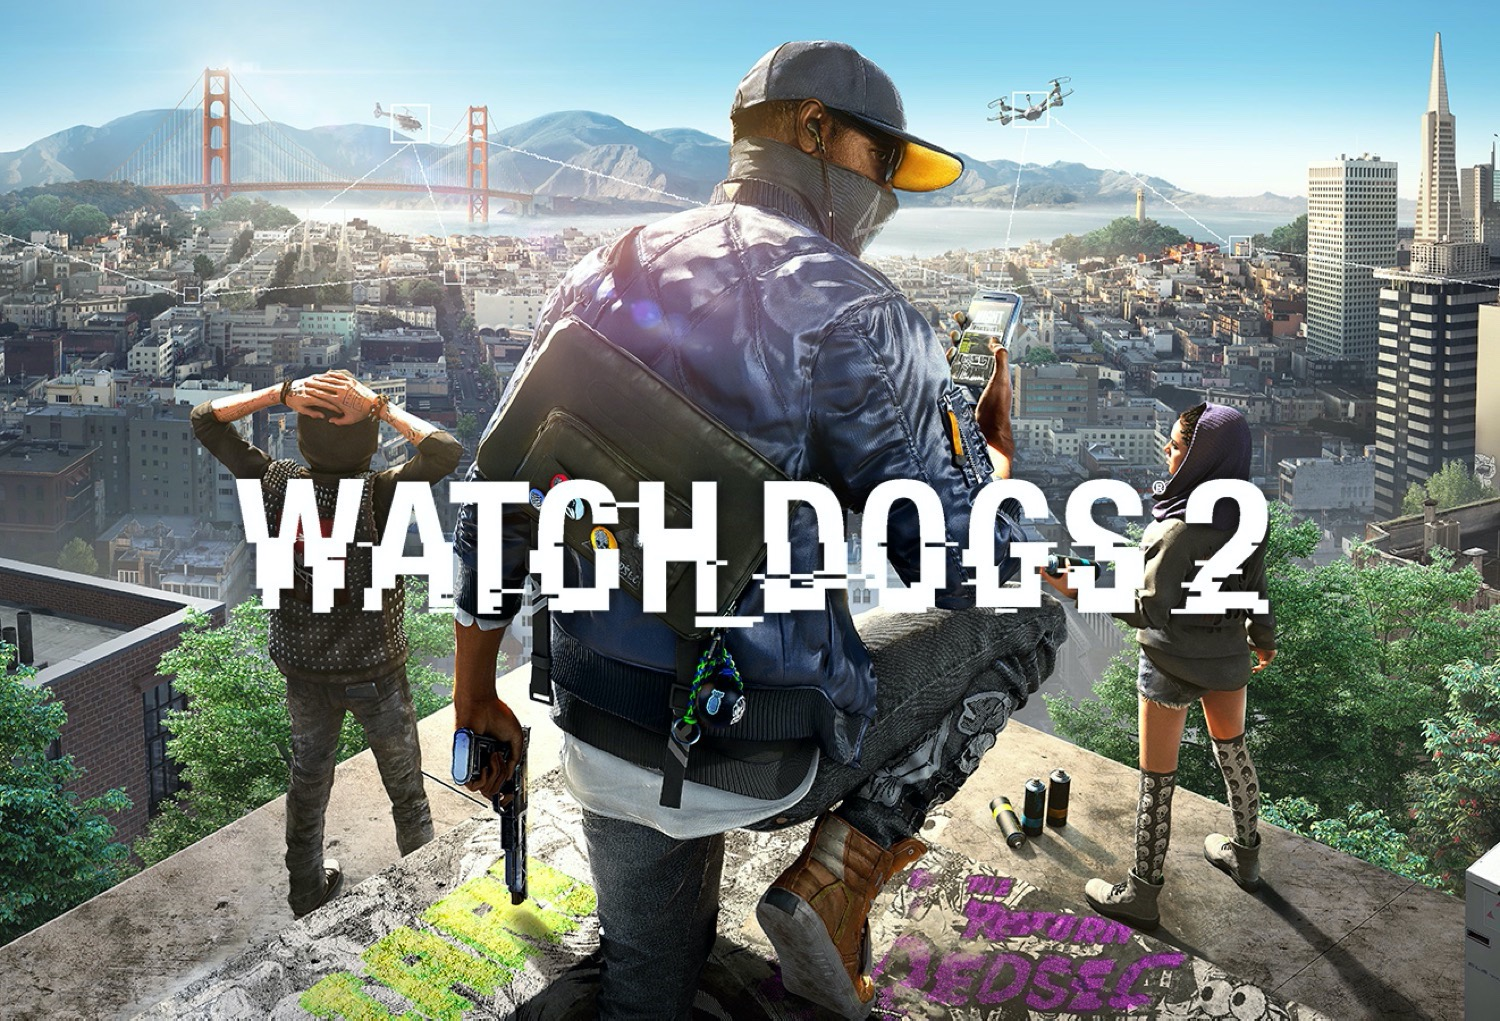 Watch Dogs 1 and 2 are now available on Stadia starting at just $10 for Pro subscribers